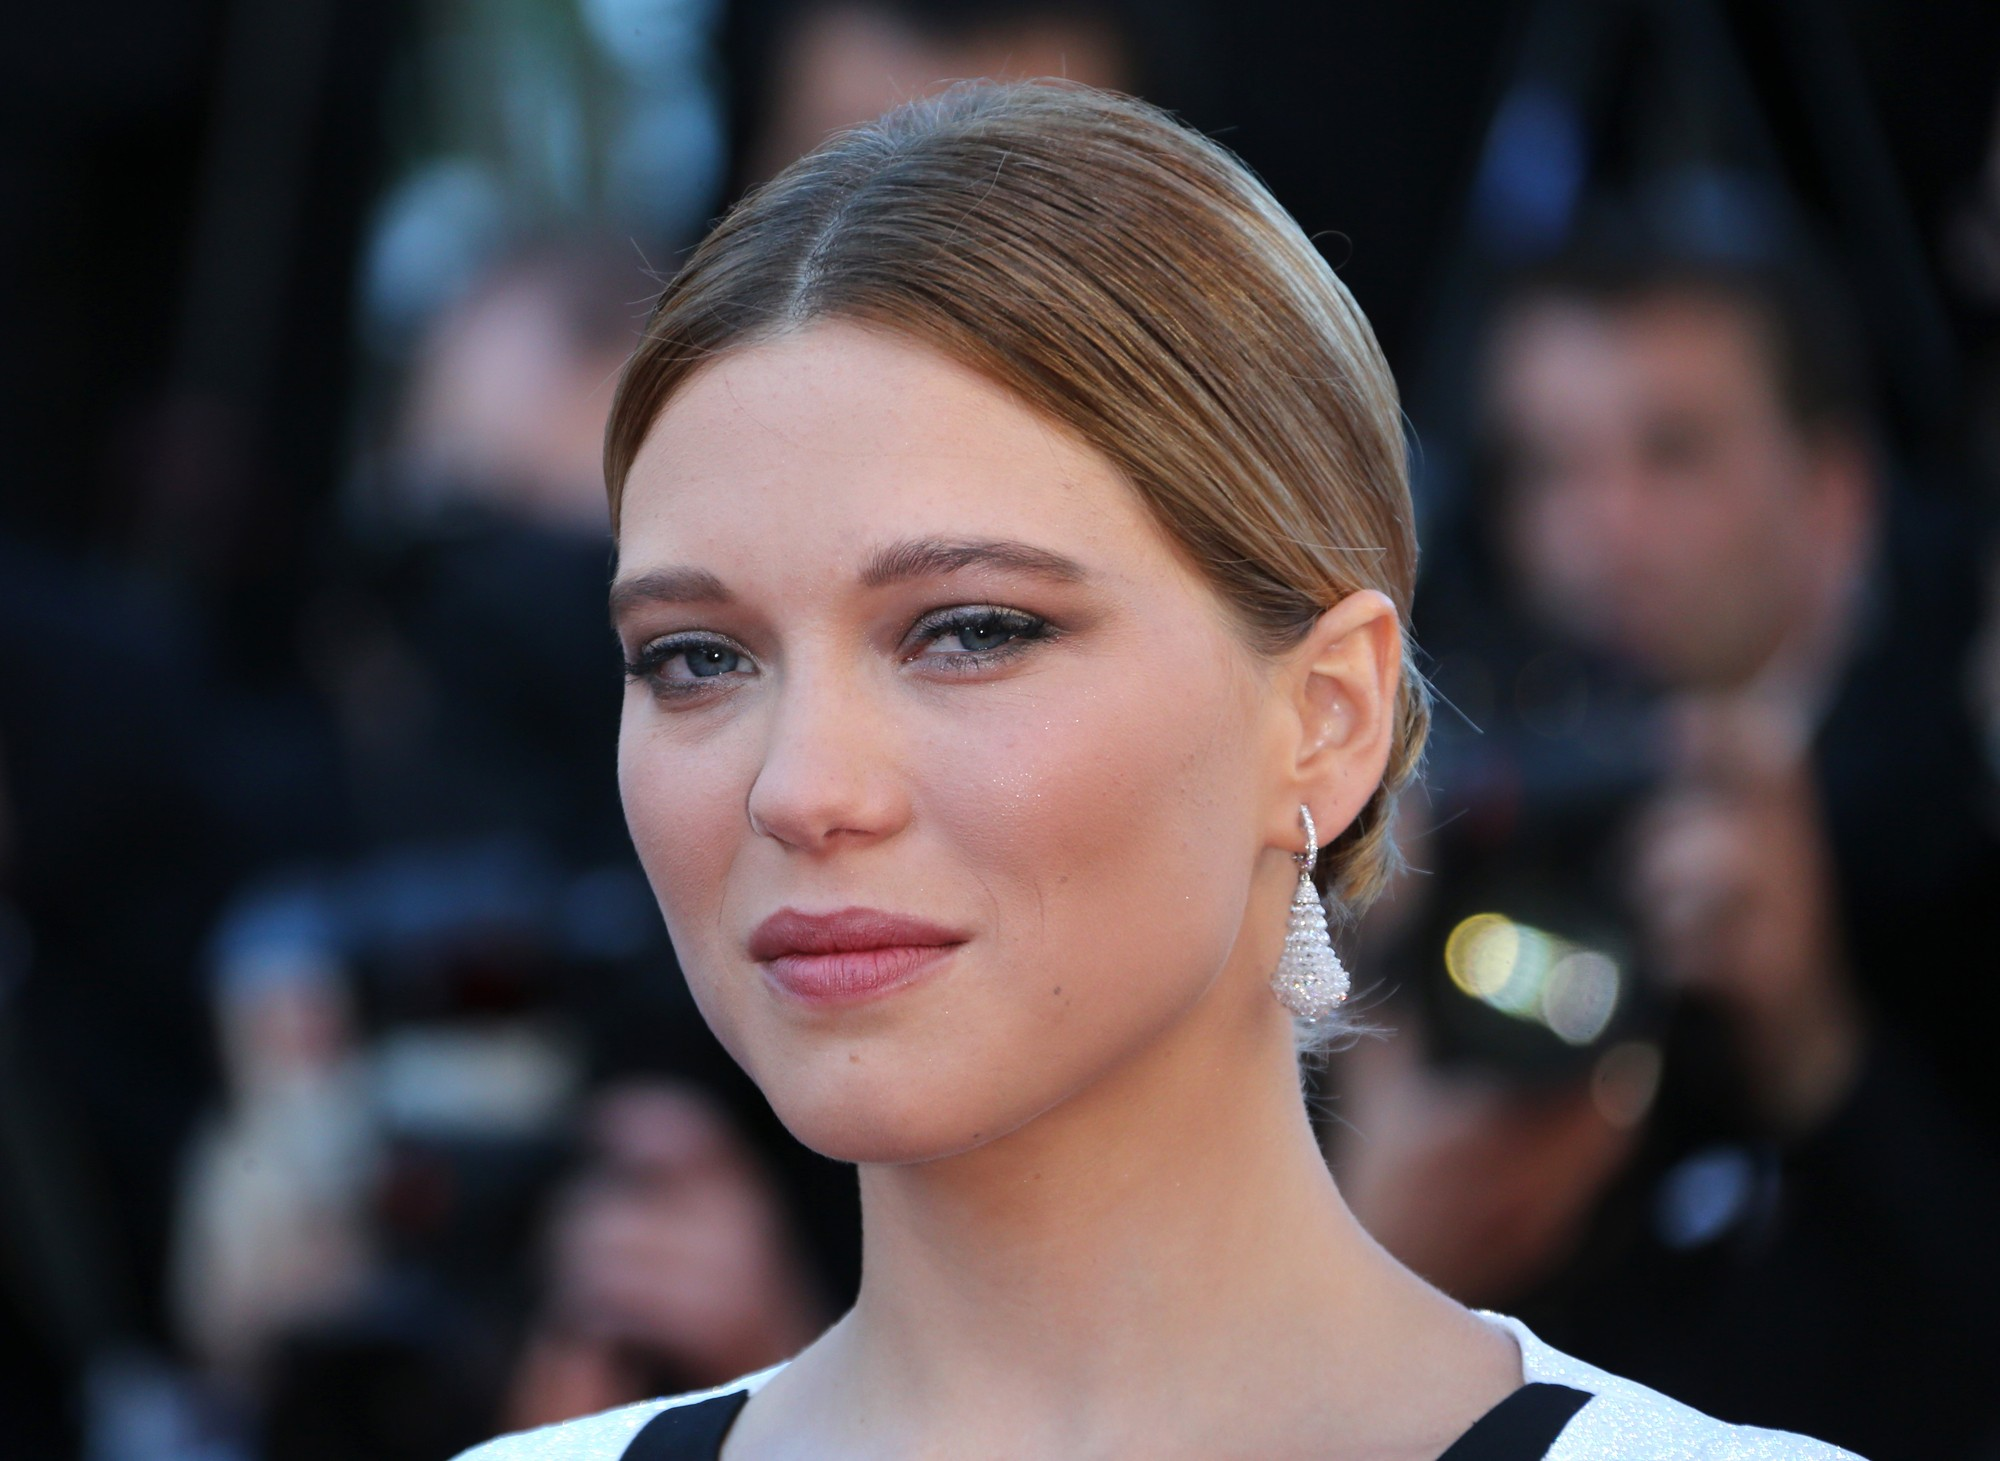 Lea Seydoux Wallpaper Pictures 54993